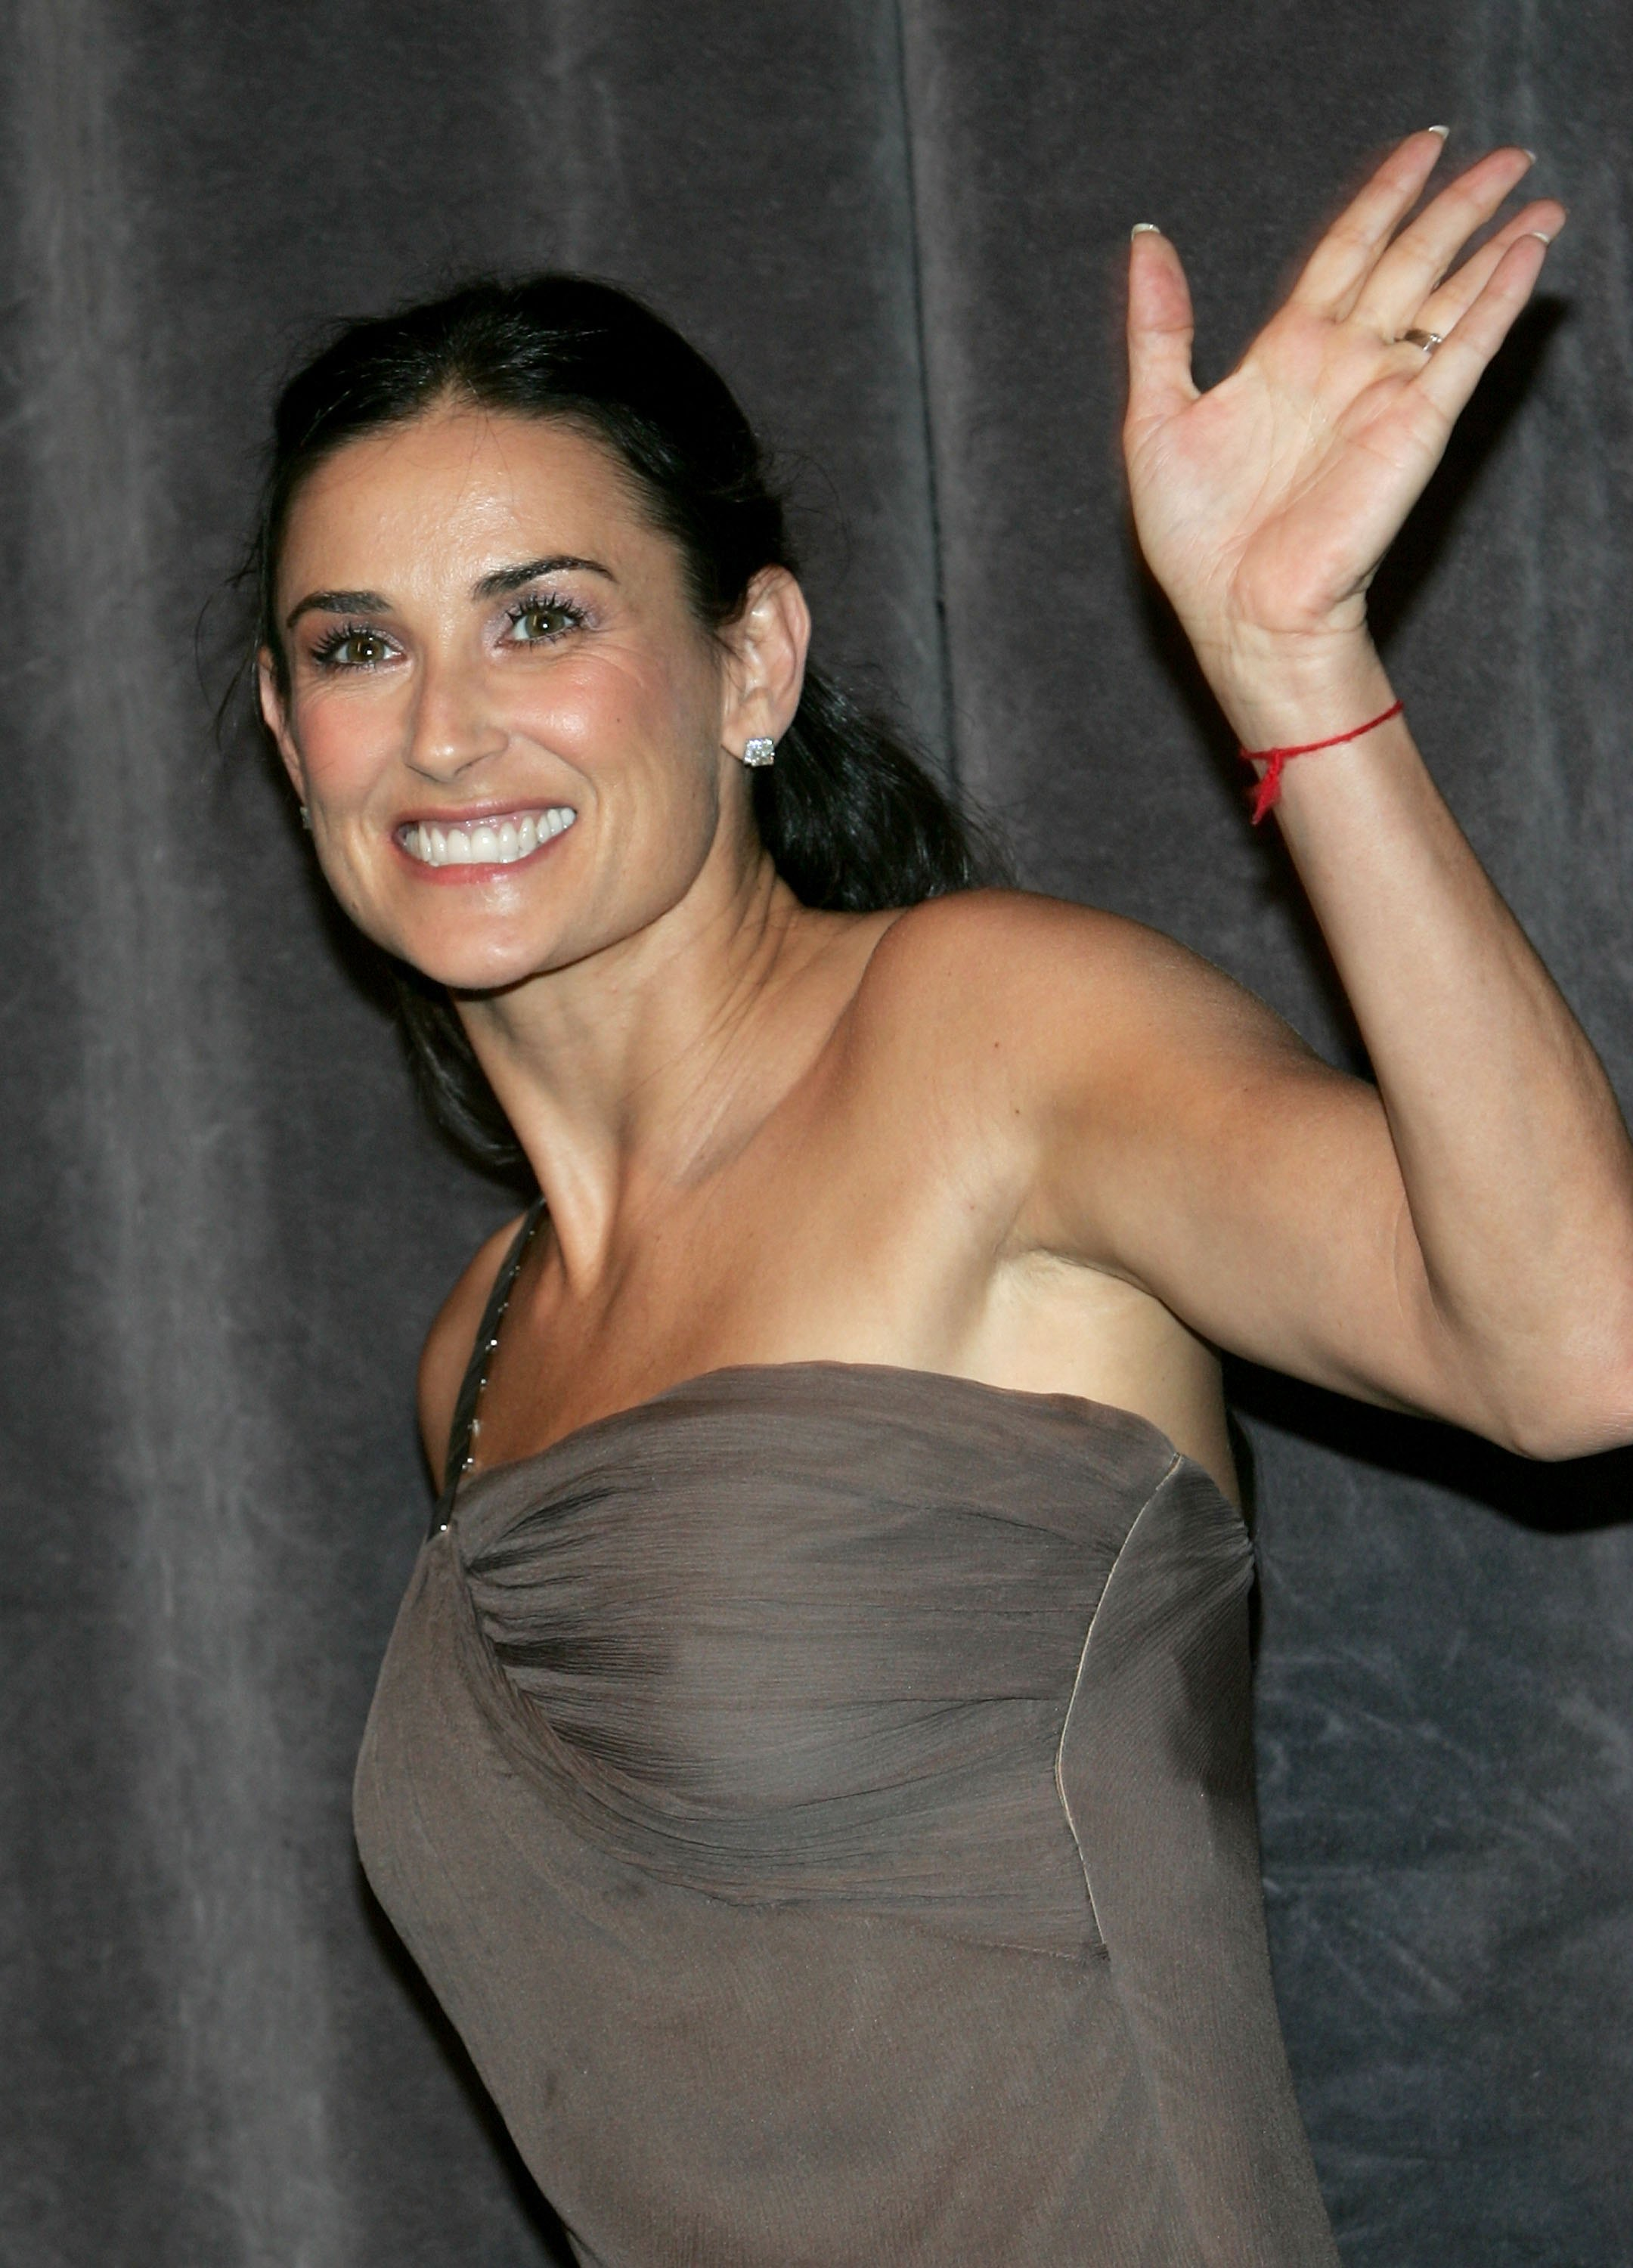 http://www.internetcelebrity.org/albums/wpw-20061017/DemiMoore71891331.jpg